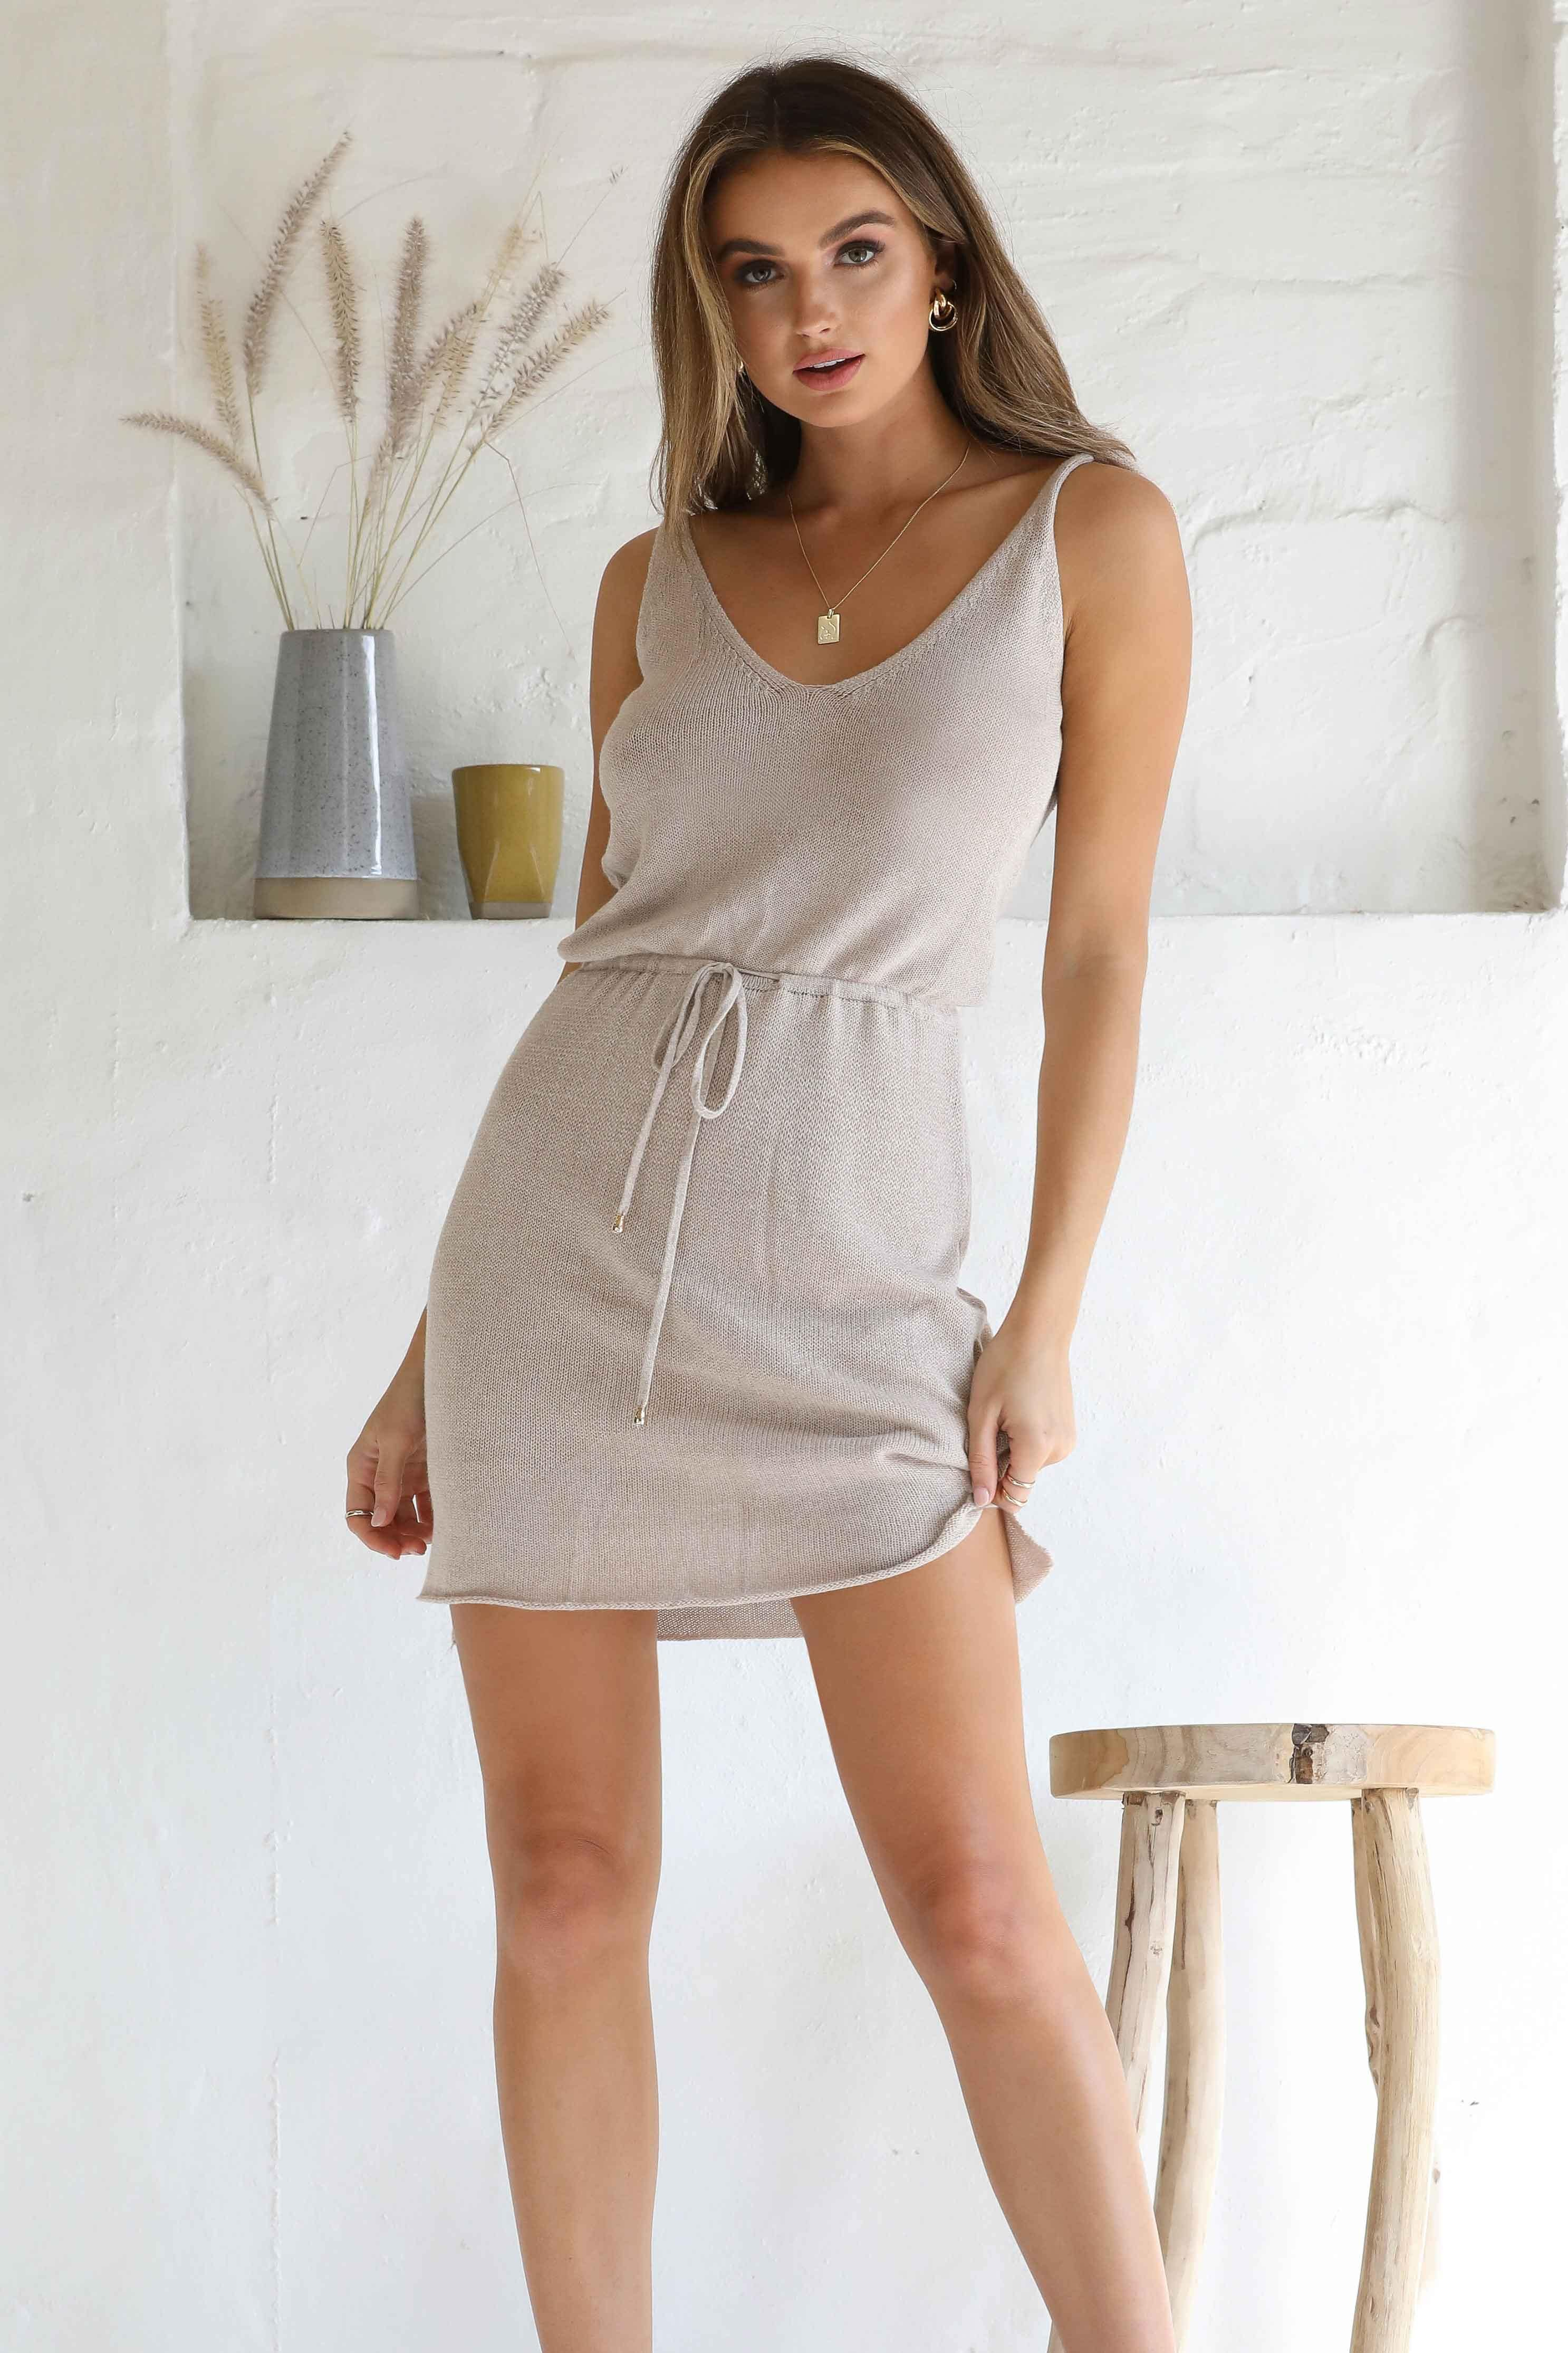 ELLIE KNIT DRESS - OATMEAL | Women's Online Shopping | CHICLEFRIQUE  (4469947695193)